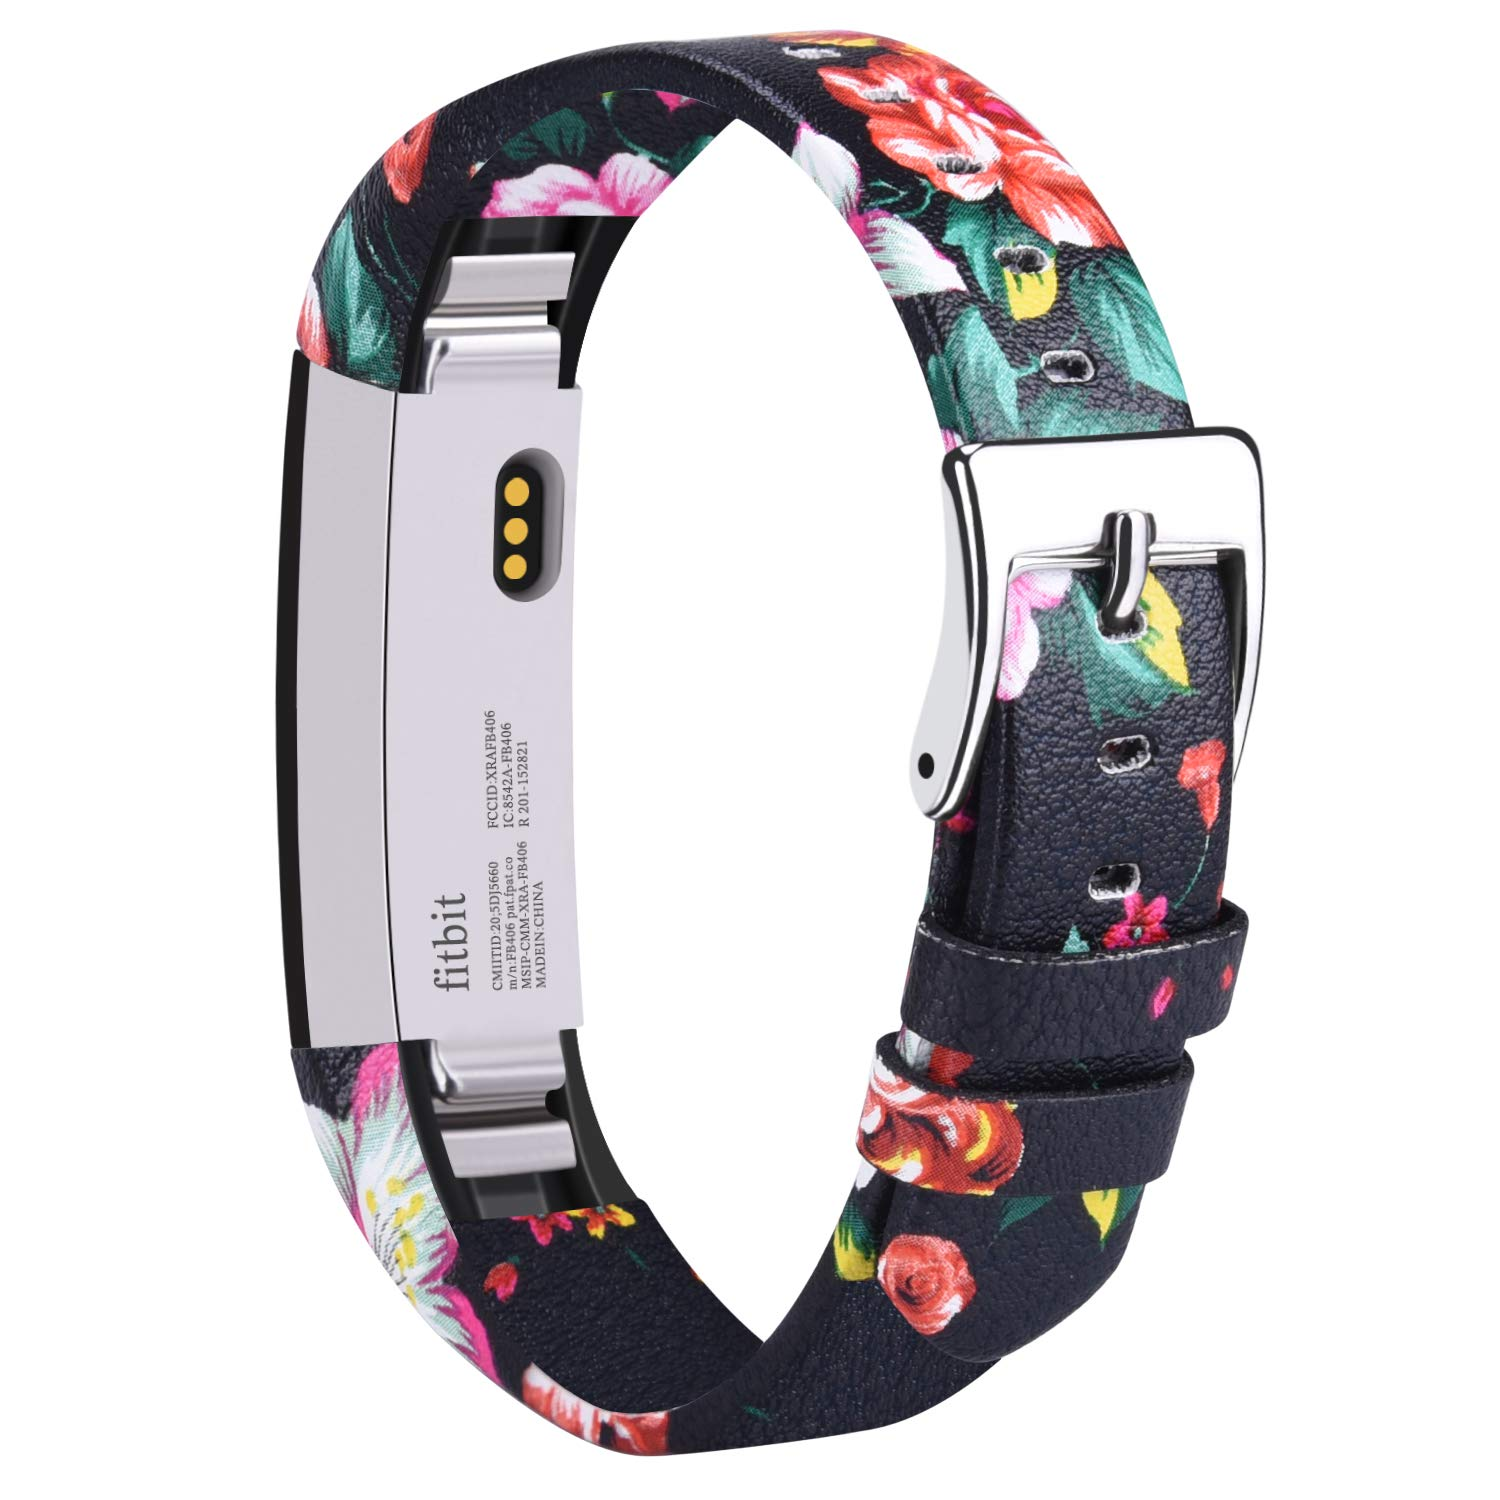 Vancle Leather Bands Compatible with Fitbit Alta/Fitbit Alta HR for Women Men, Adjustable Replacement Accessories Strap with Buckle for Fitbit Alta and Fitbit Alta HR (.Floral Red)